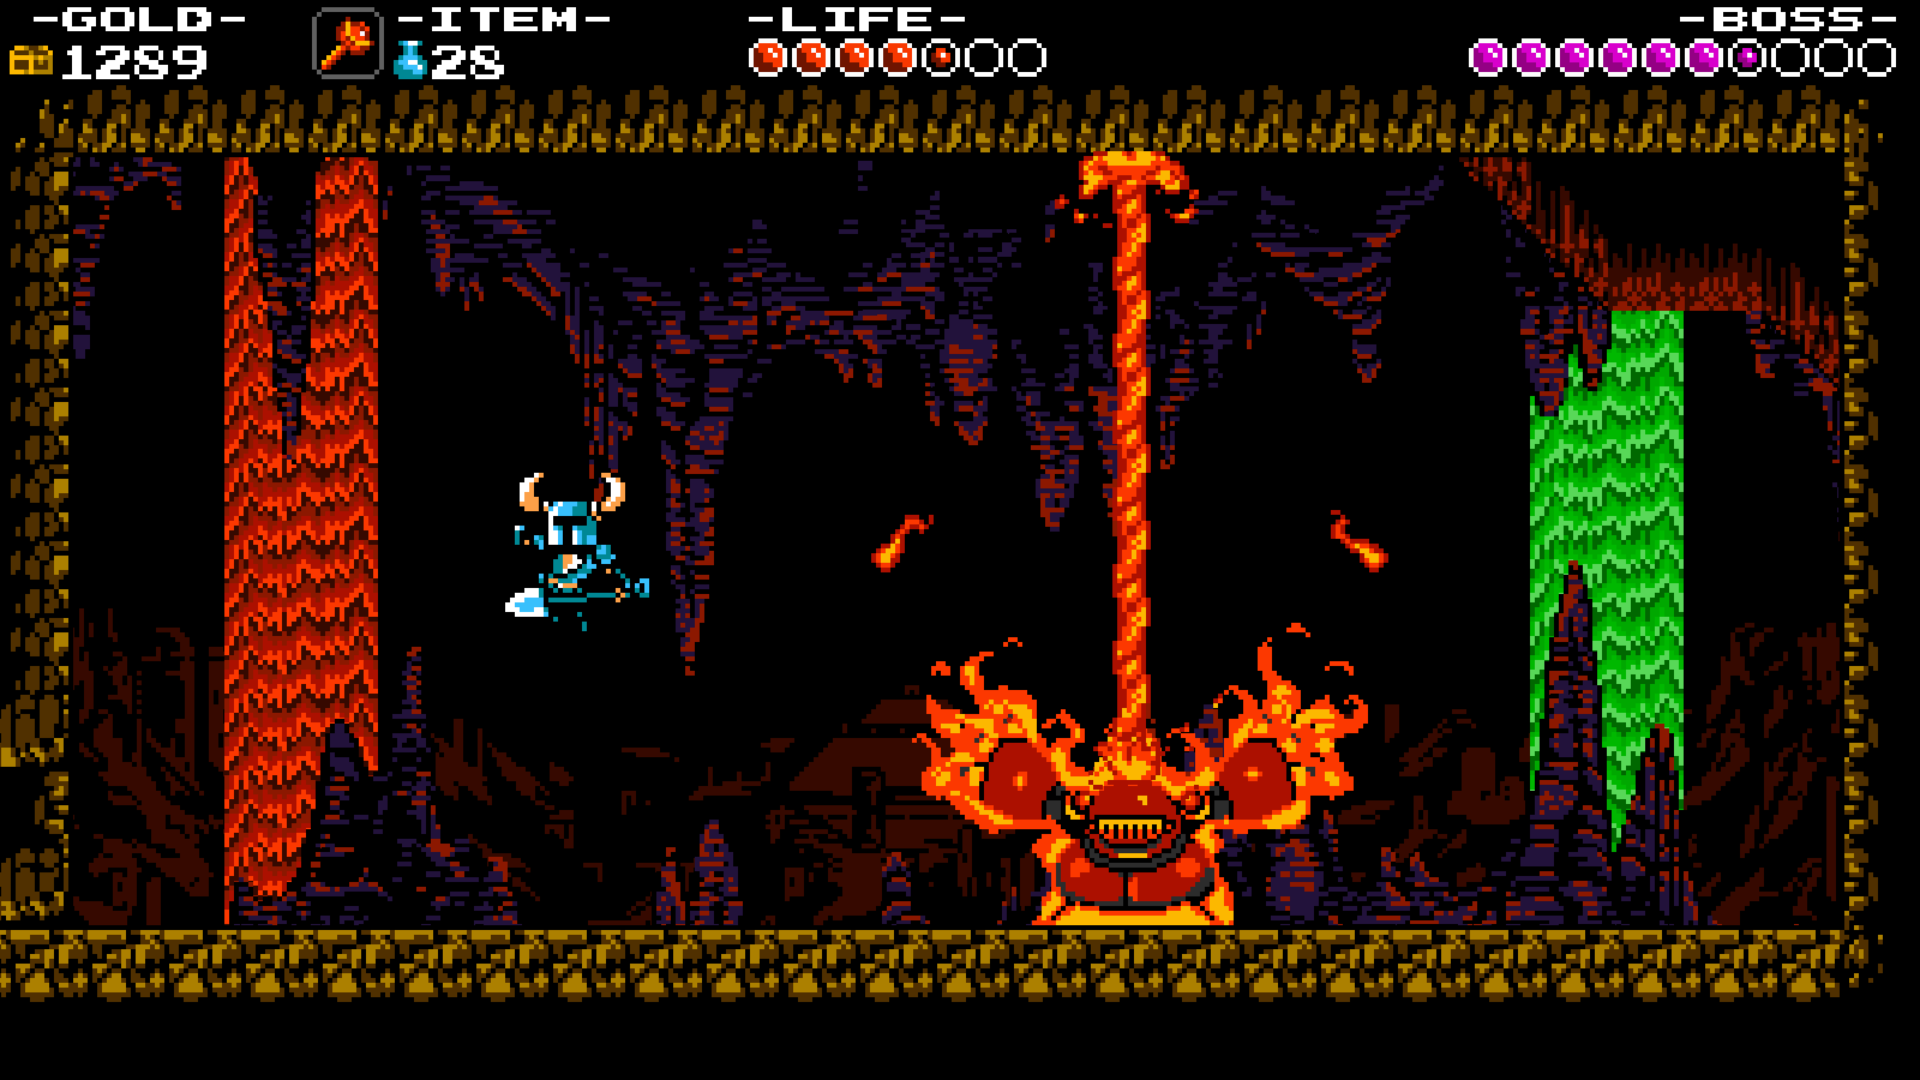 Shovel Knight Pc Review Digging Up The Past To Find Buried Treasure